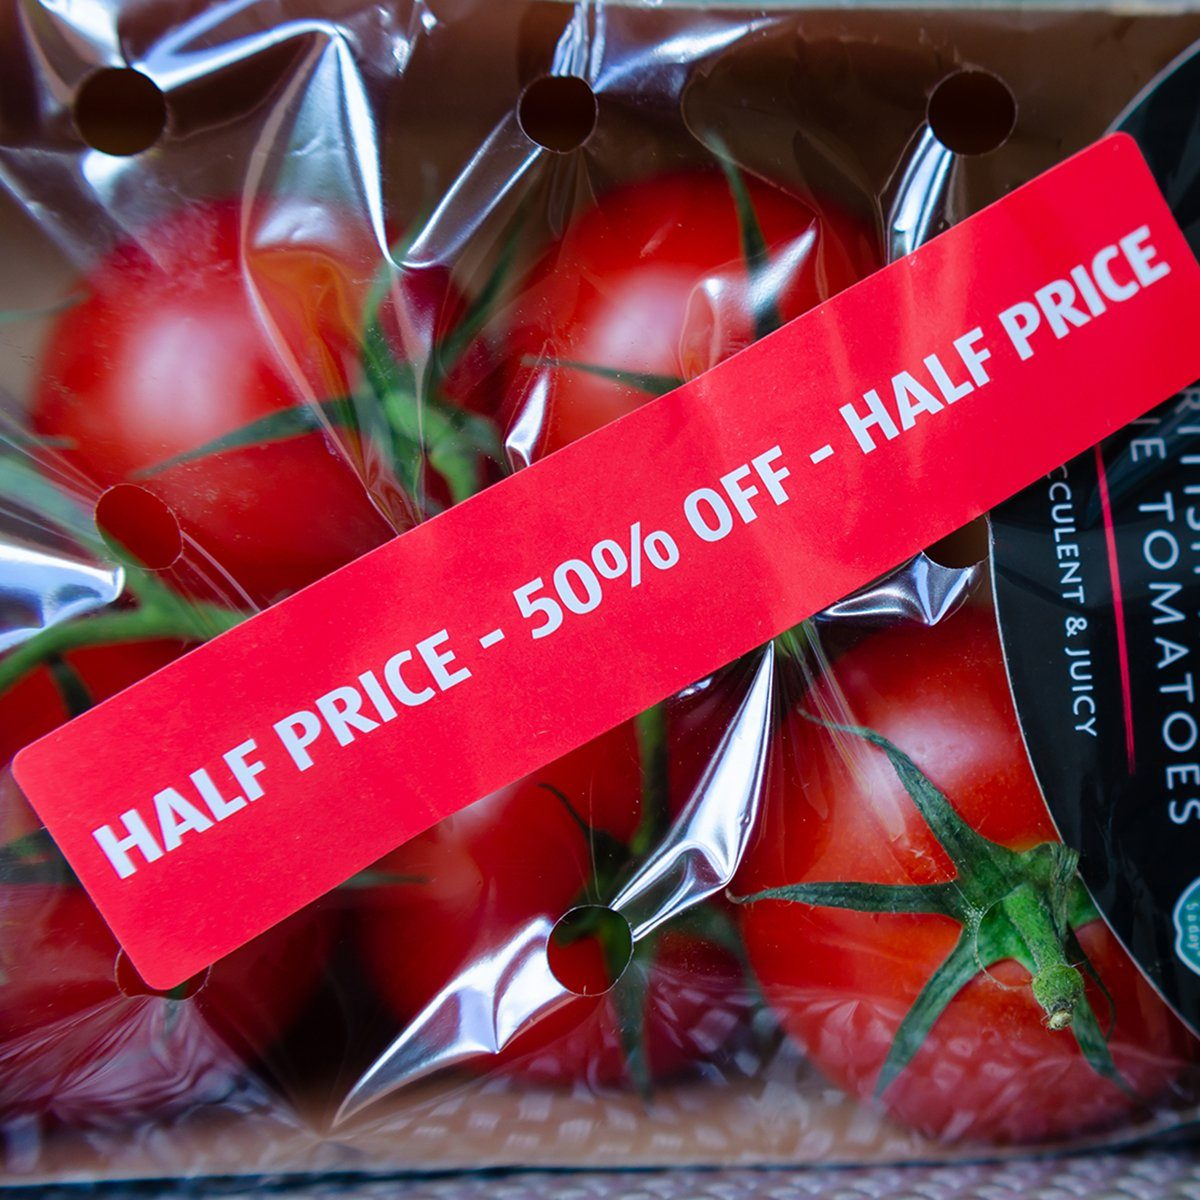 "Stone, Staffordshire / UK - July 1 2019: Pack of British Regal Vine Tomatoes with discount label from ALDI supermarket. Short dated vegetables on clearance are with label: ""Half price, 50% off""; Shutterstock ID 1439340539; Job (TFH, TOH, RD, BNB, CWM, CM): TOH"